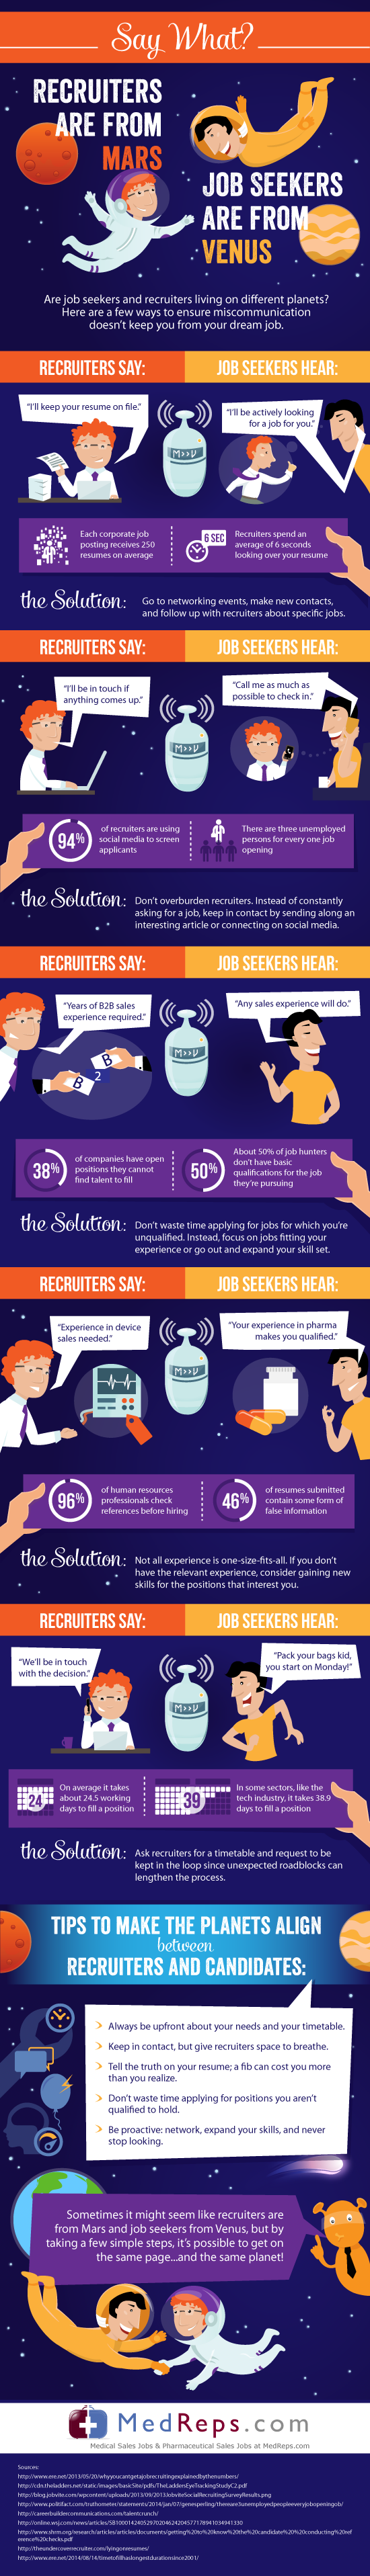 Recruiters Are From Mars, Job Seekers Are From Venus